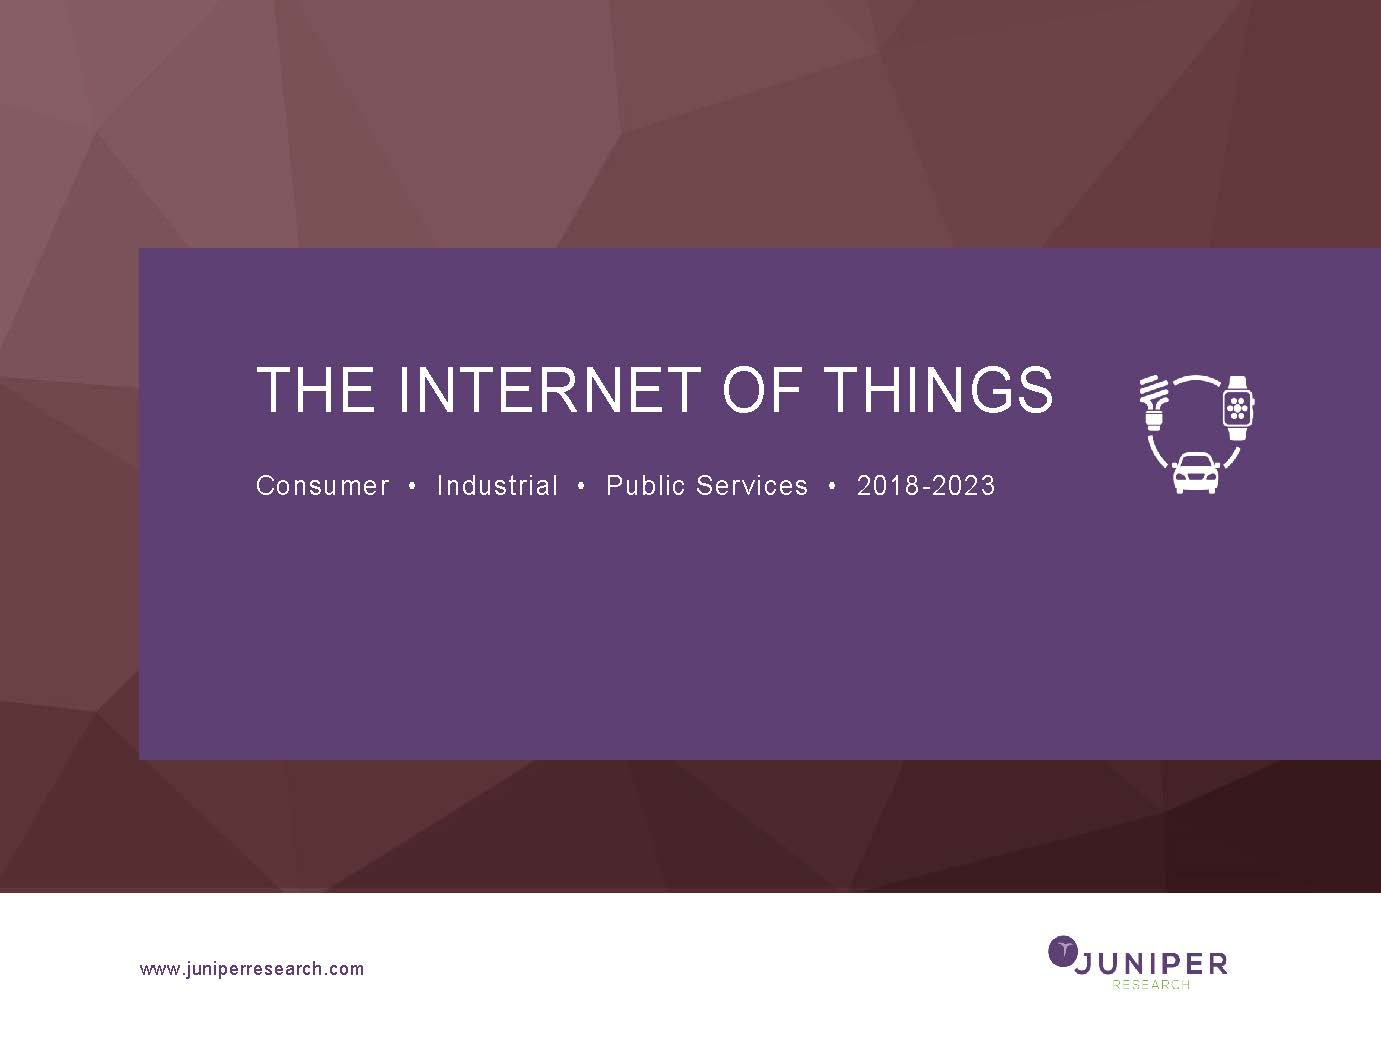 The Internet of Things: Consumer, Industrial & Public Services 2018-2023